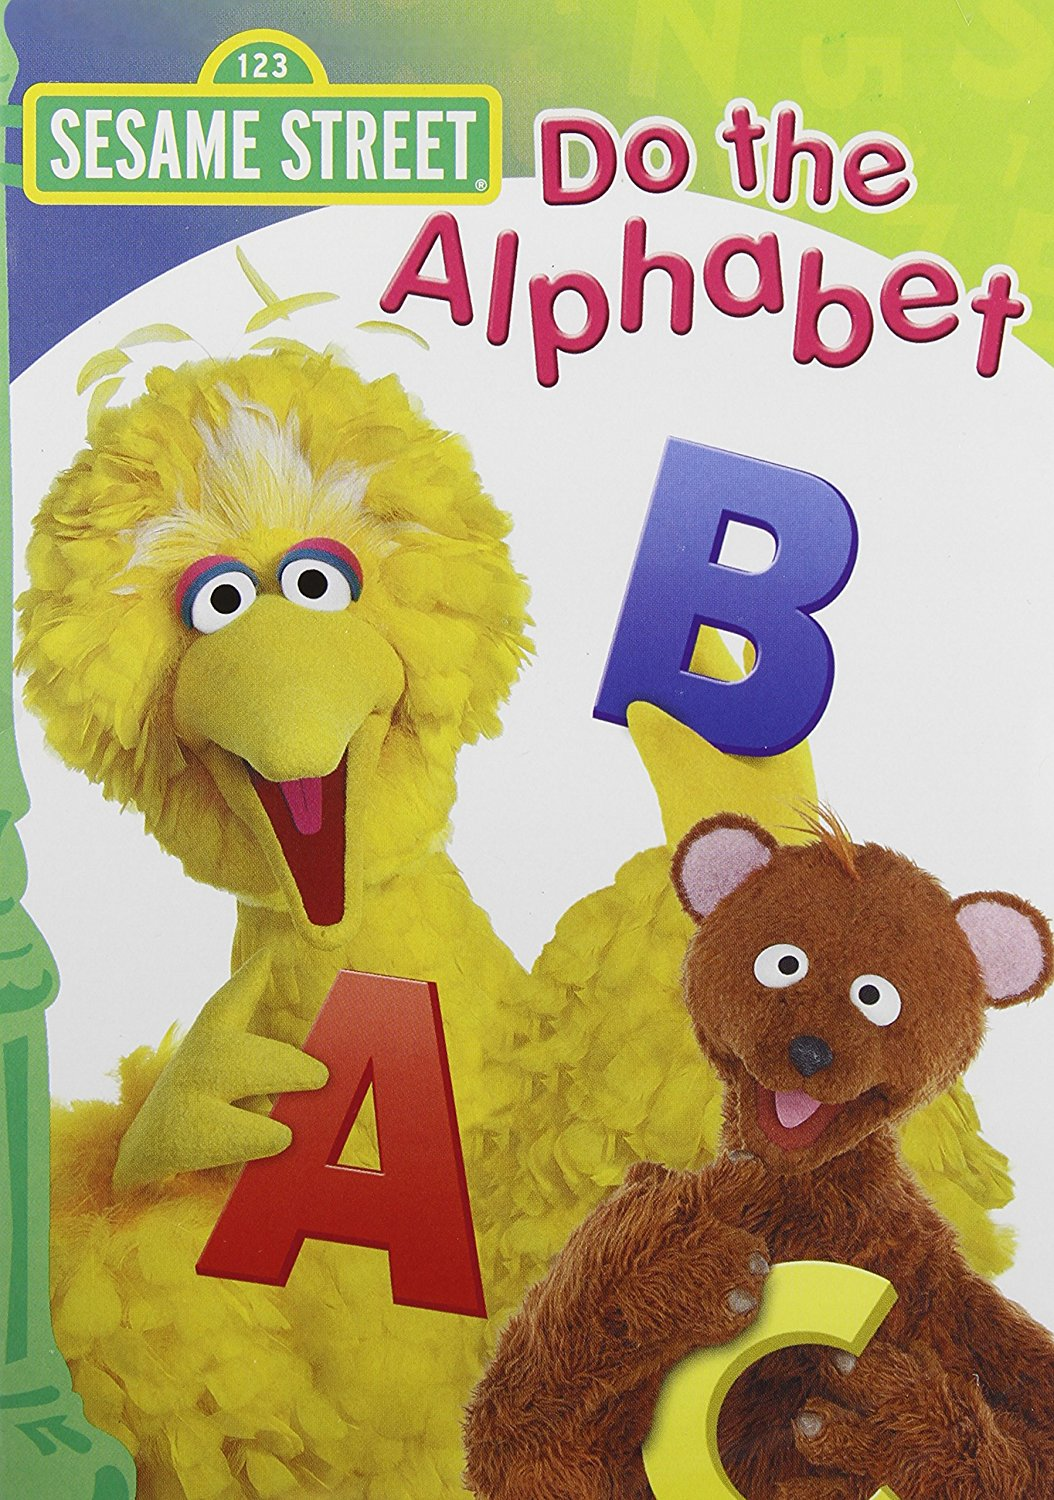 Sesame Street Sesame Workshop: Sesame Street Do The Alphabet Dvd